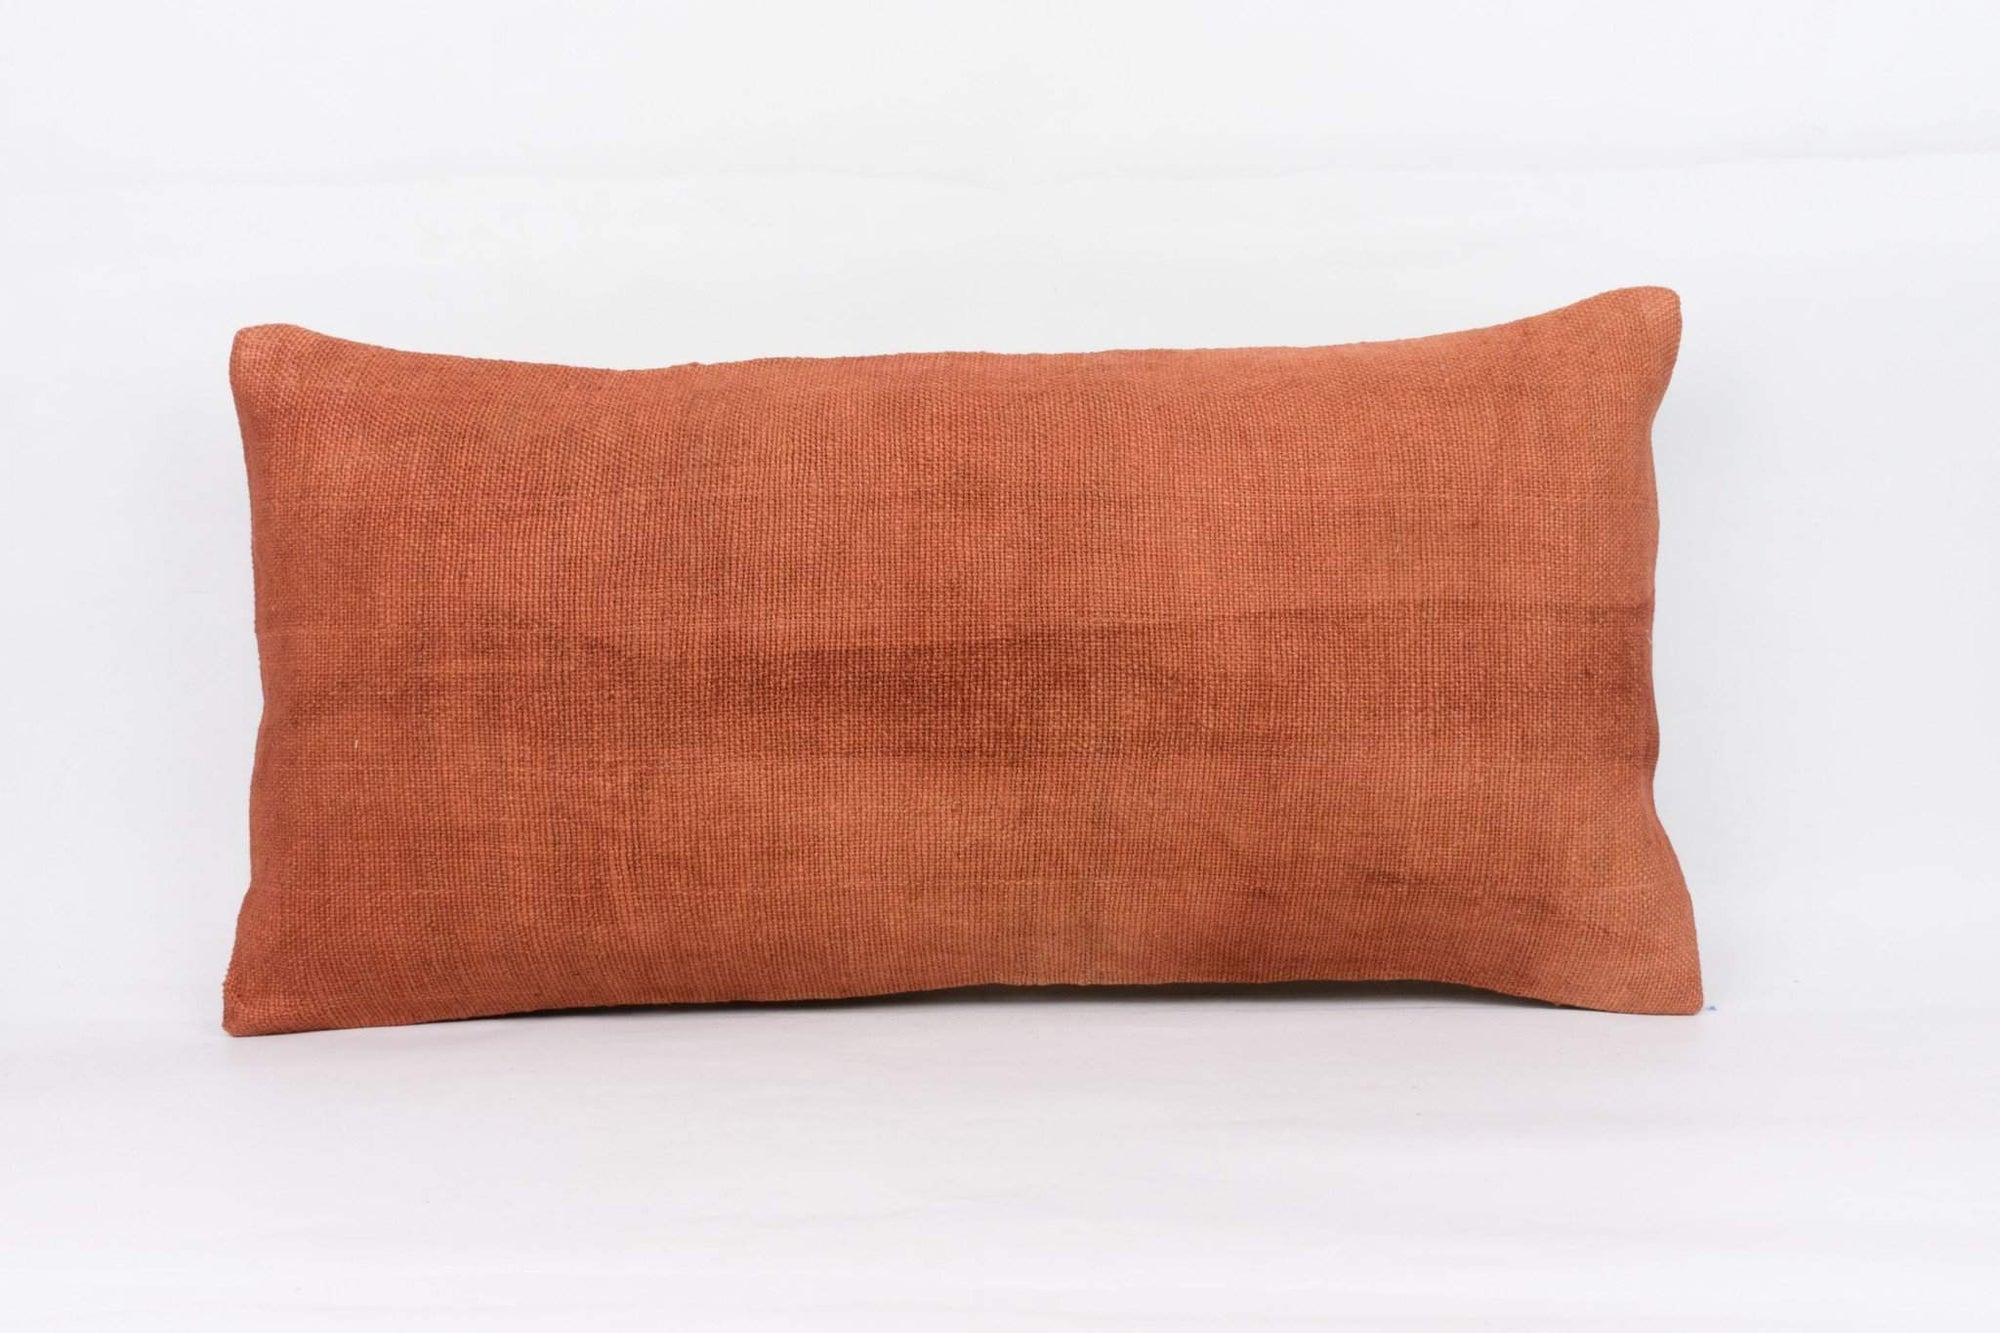 Plain Brown Kilim Pillow Cover 12x24 4189